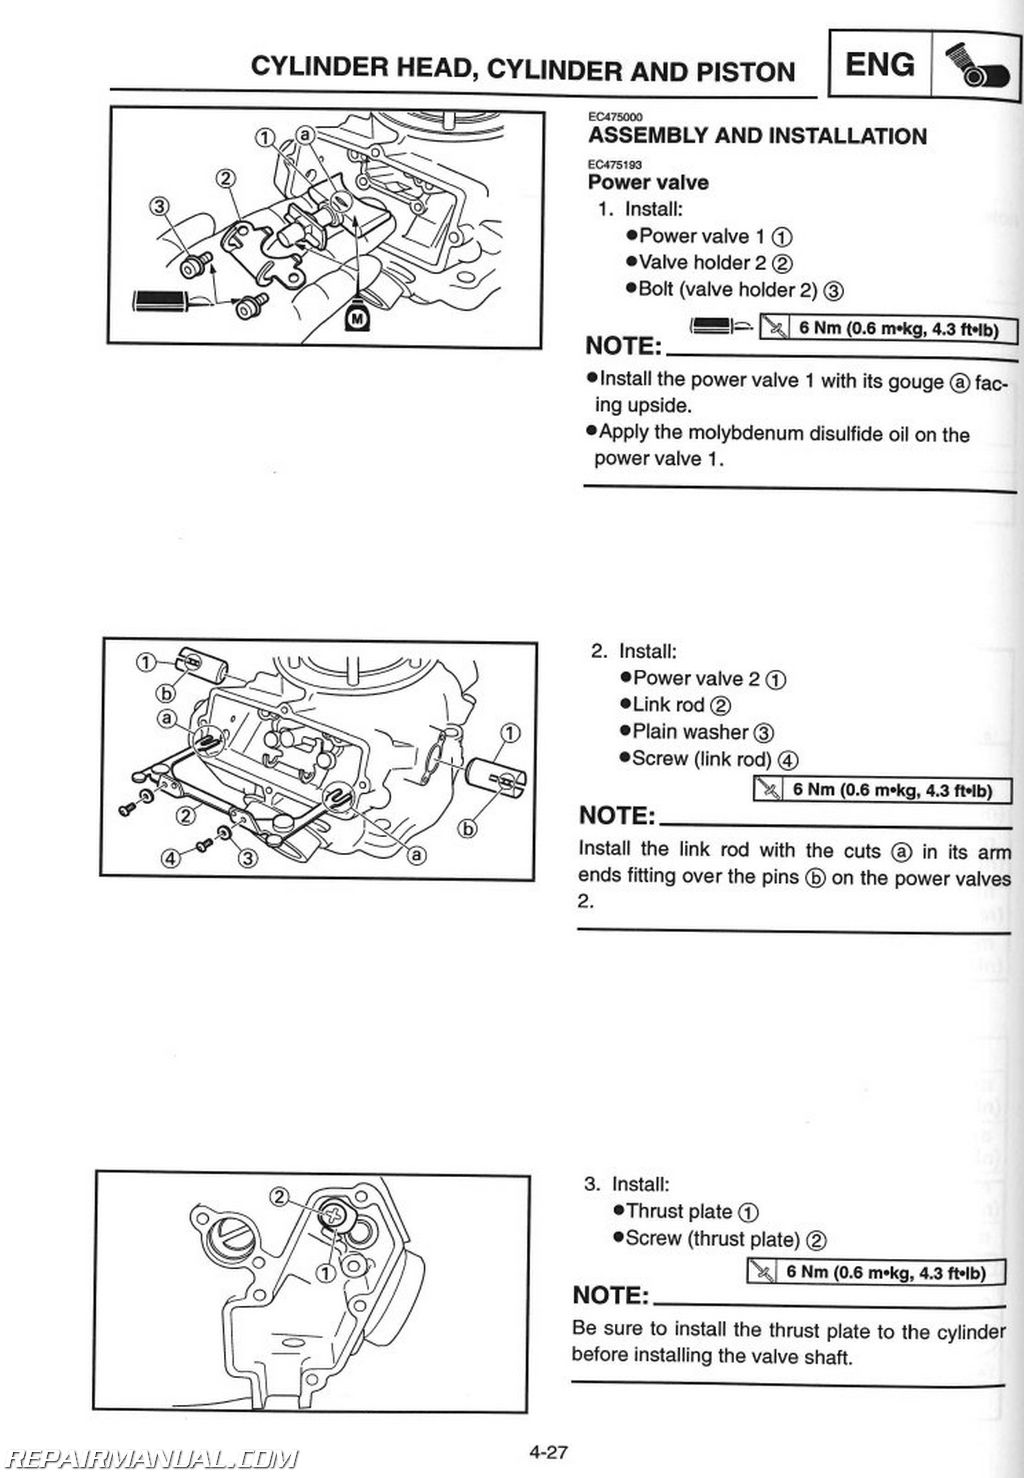 2002 yamaha yz250 motorcycle owners service manual : lit ... yz250 wiring diagram #15